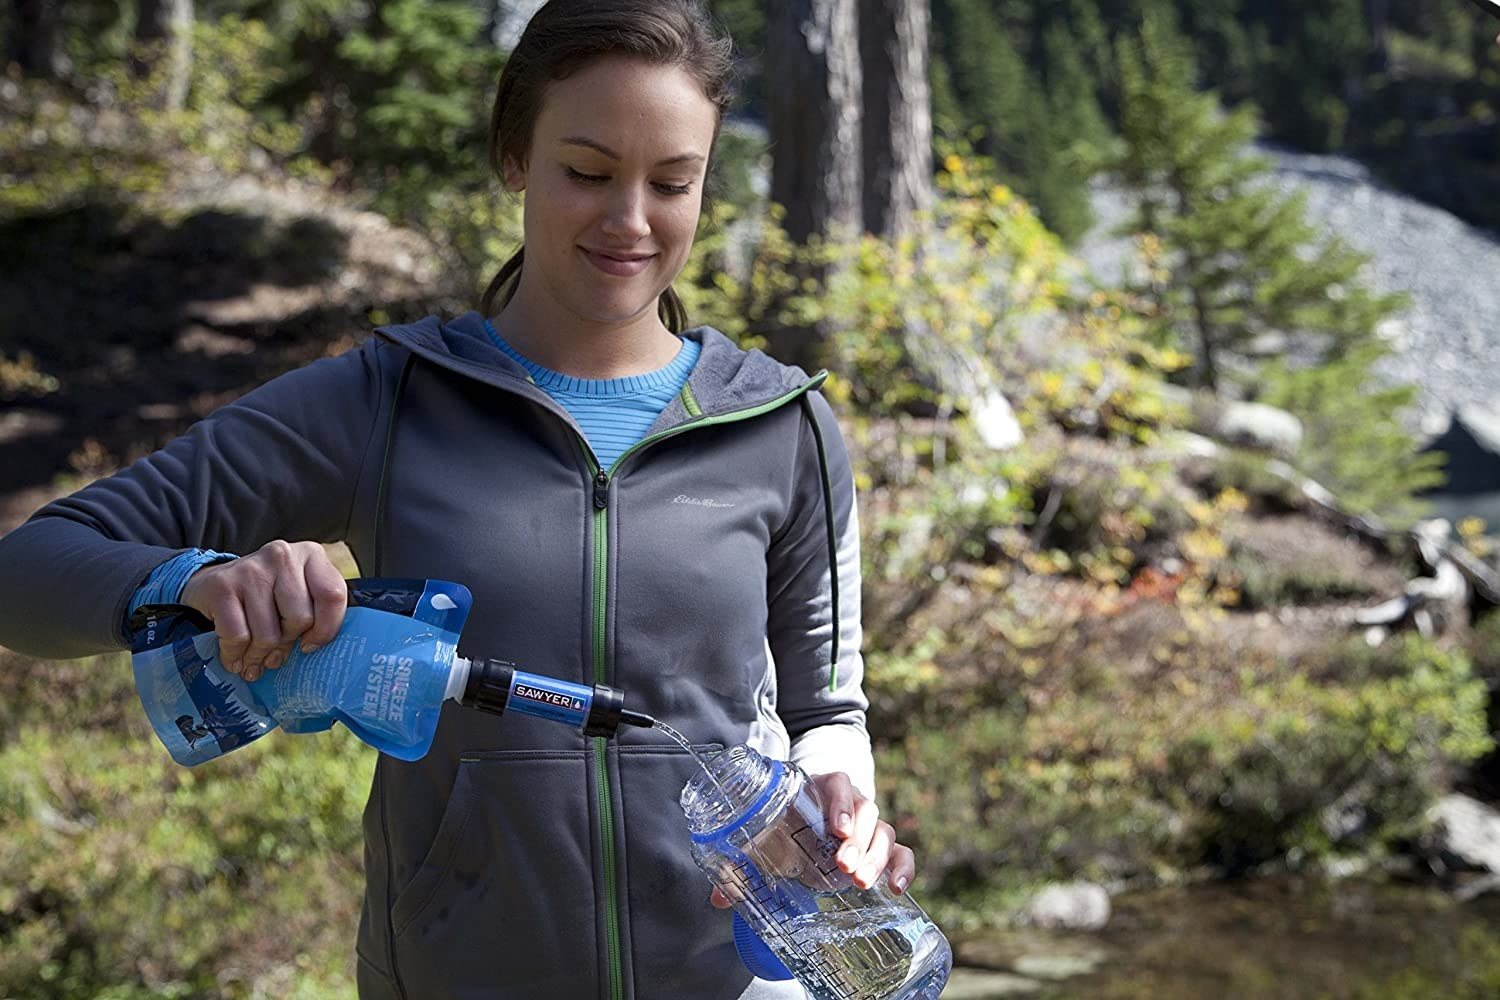 Model squeezing water from filtration straw and pouch into a bottle